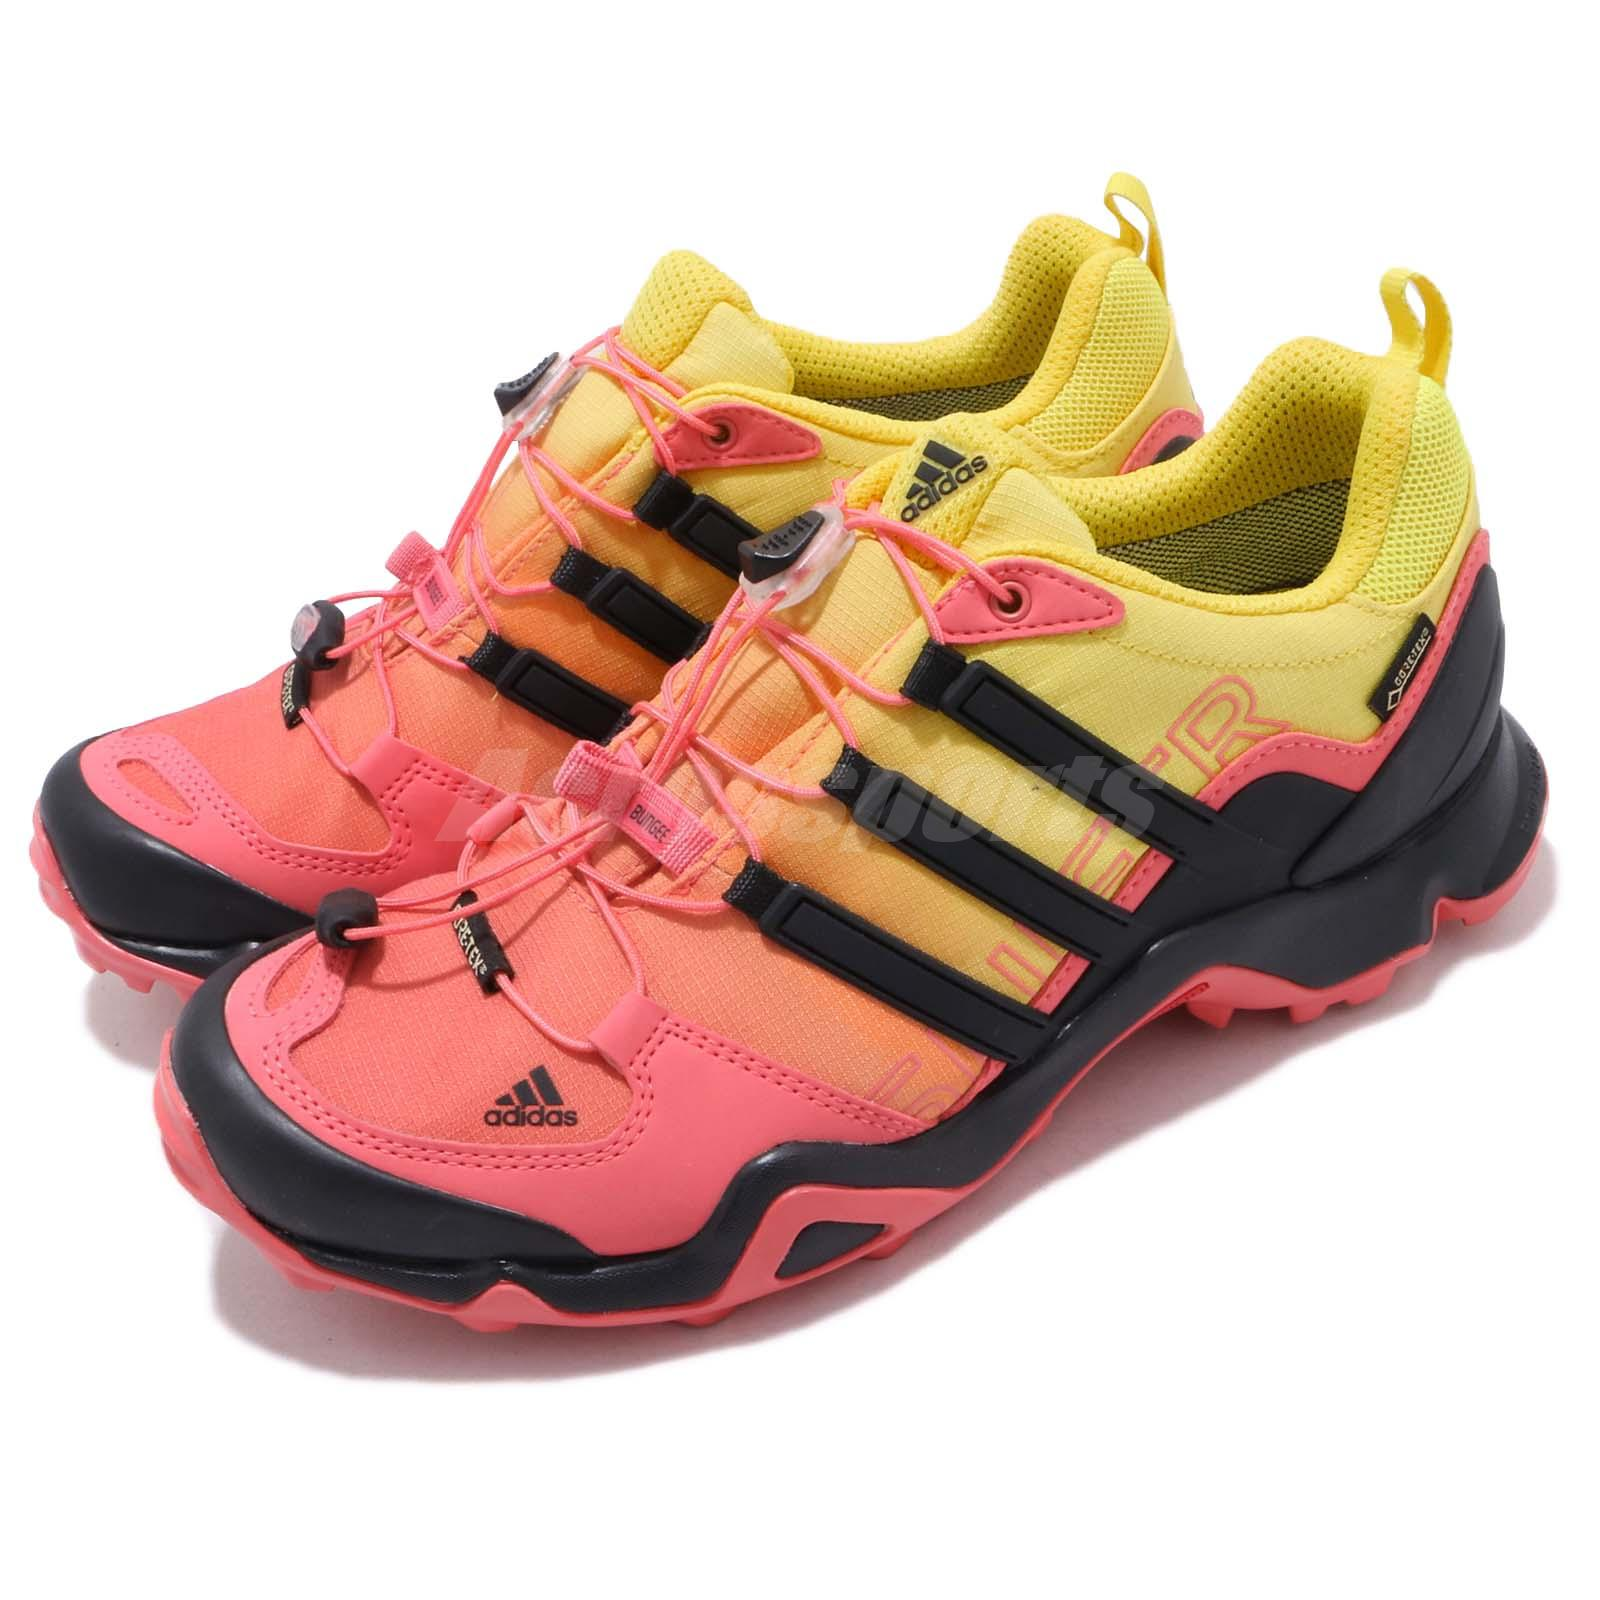 10bcb3085f7024 Details about adidas Terrex Swift R GTX W Gore-Tex Black Yellow Women  Outdoors Shoes AQ3983